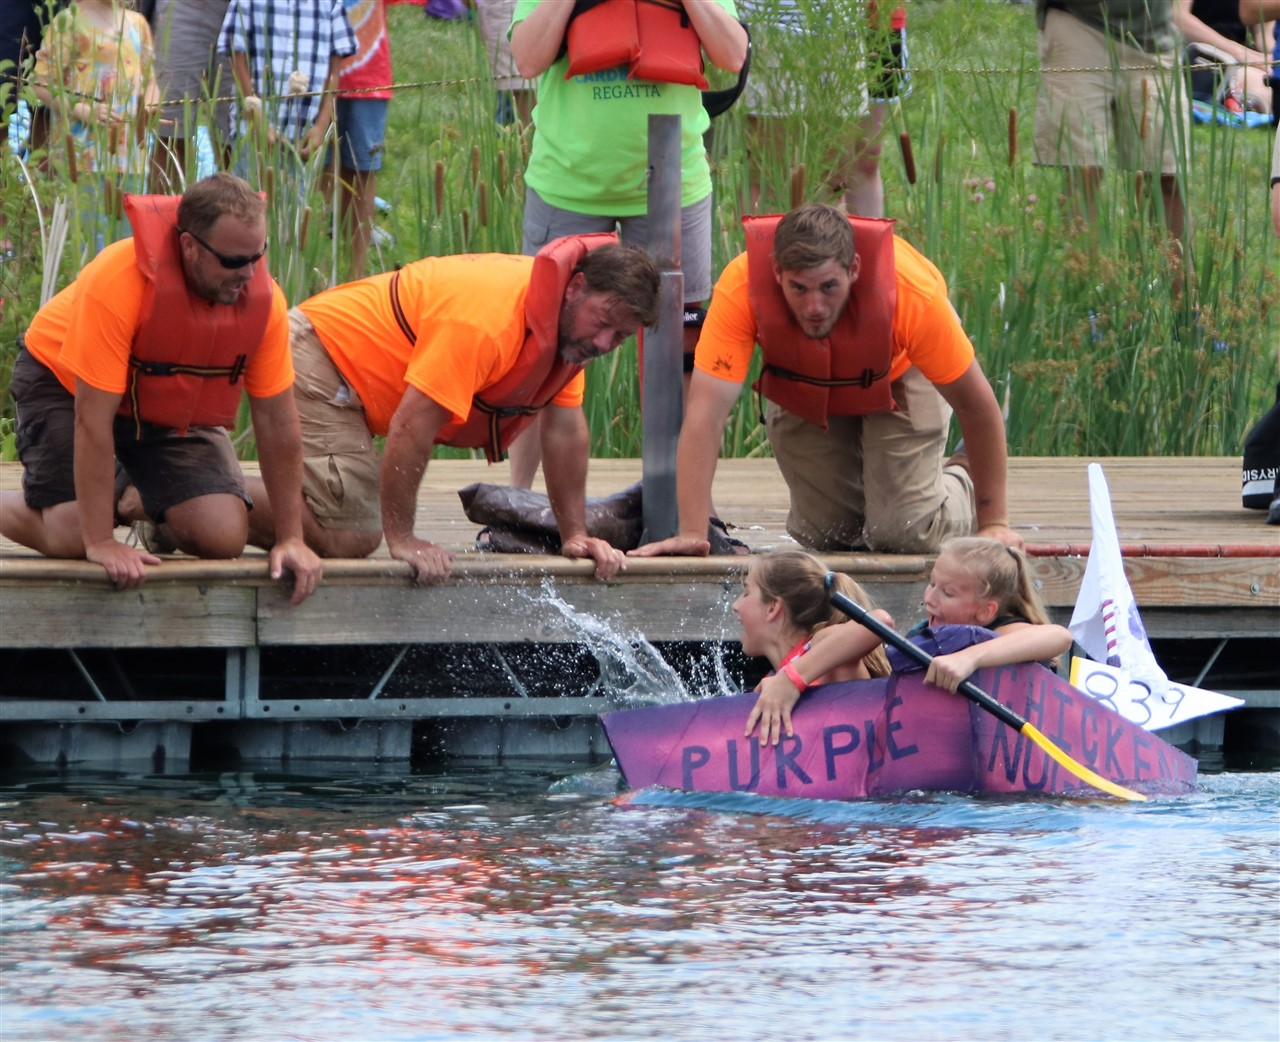 2017 07 15 83 West Chester OH Cardboard Boat Races.jpg